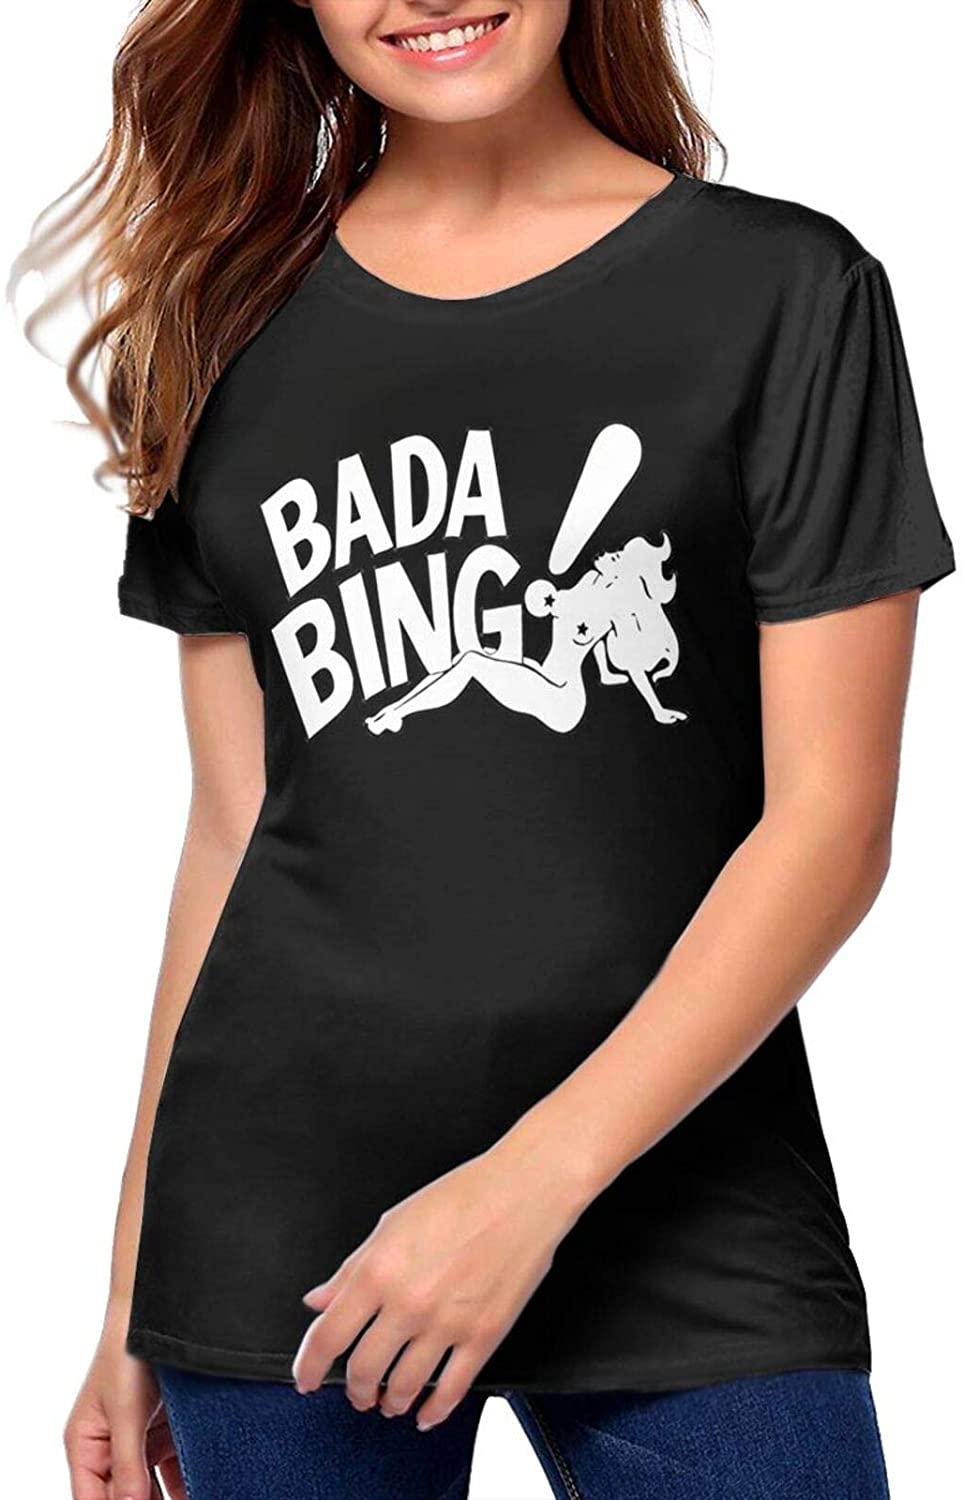 Gesdfwe Bada Bing Strip Club Inspired by The Sopranoswoman'S Breathable Tee